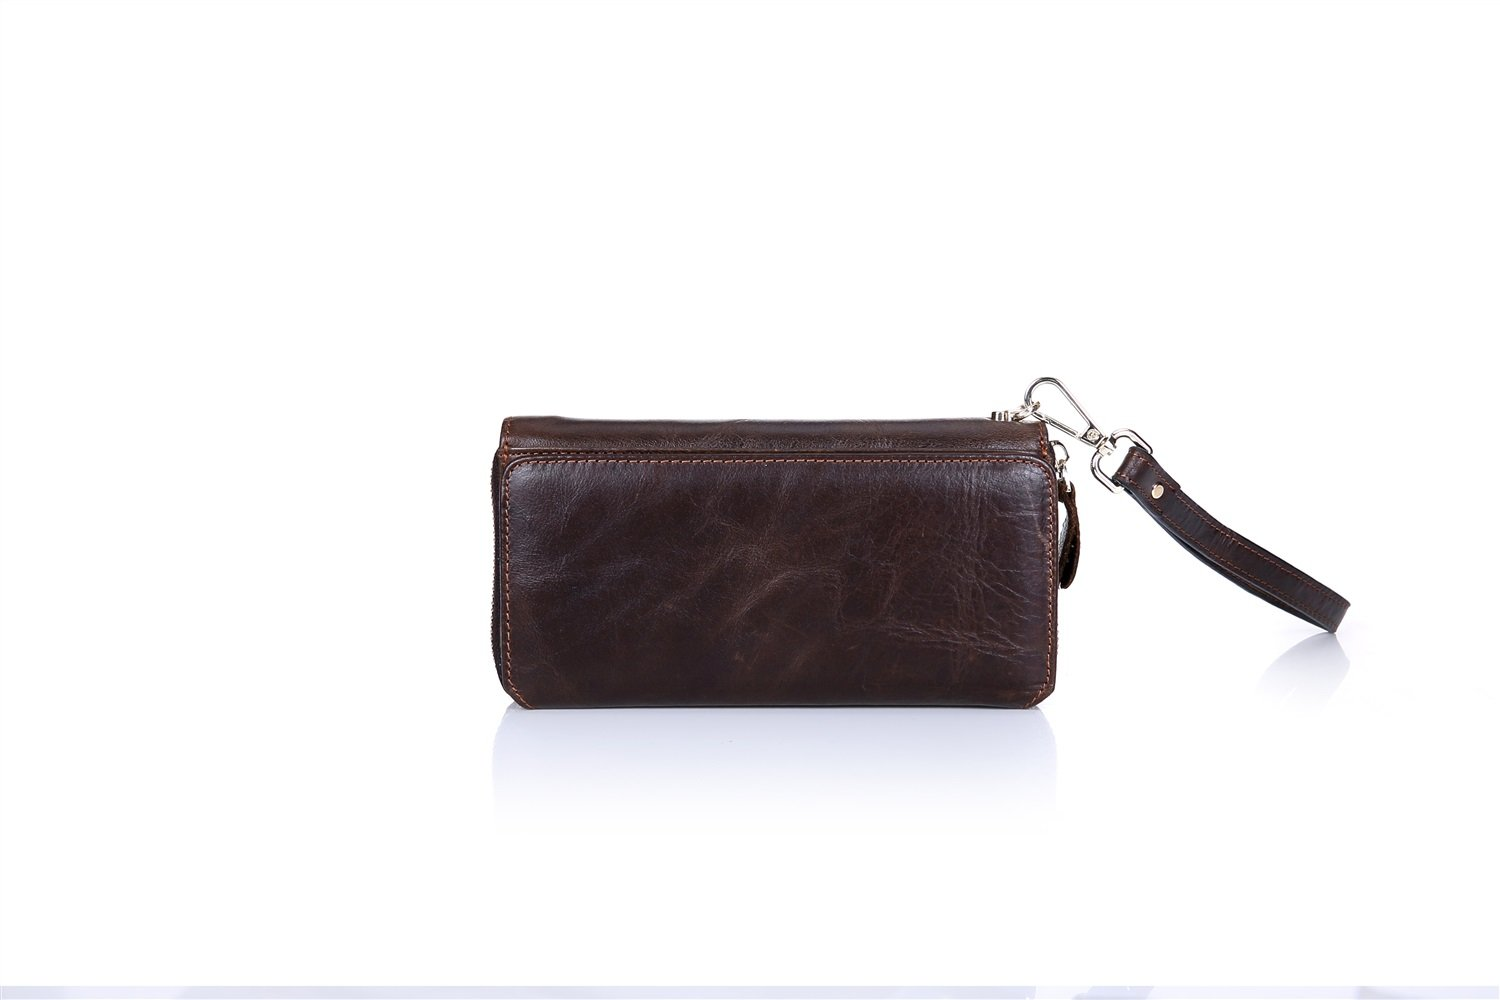 MUMUWU Mens Long Travel Wallet Leather Business Hand Bag Multi-Function Suede Leather Multi-Card Position Color : Brown, Size : S